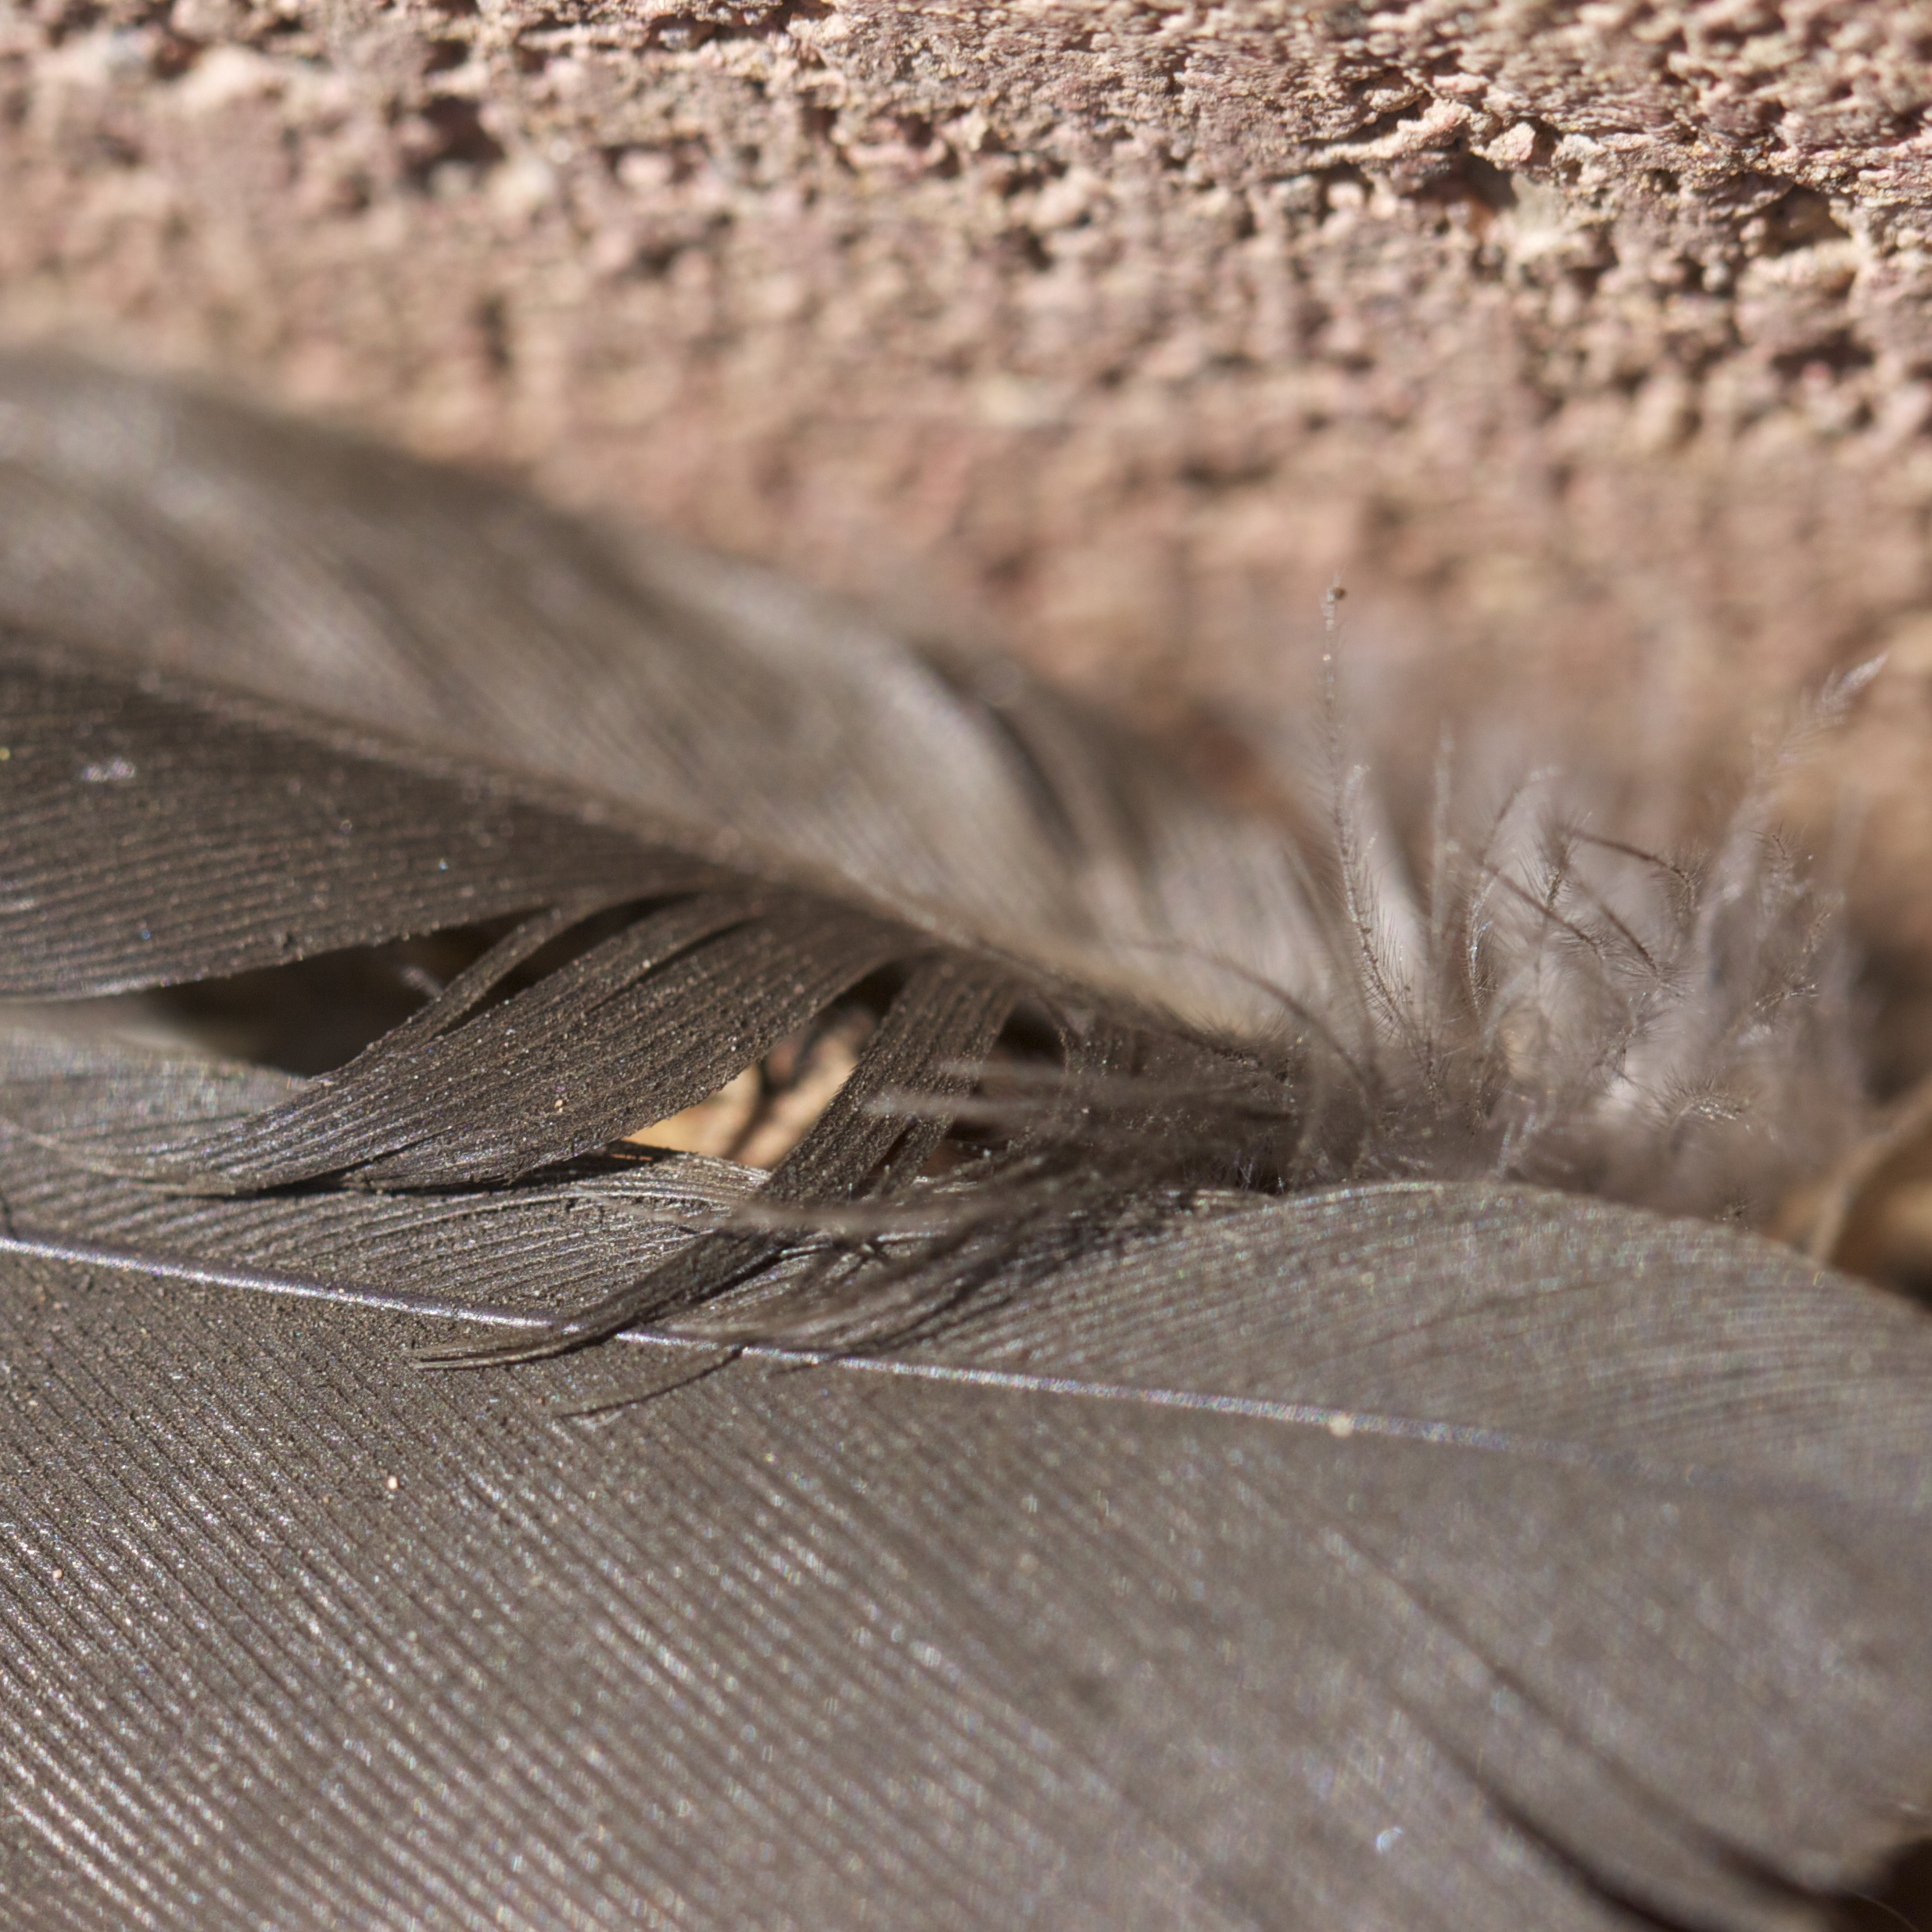 The day began in cinders. All that was left of the morning's drama a few filthy tail feathers on the ground.